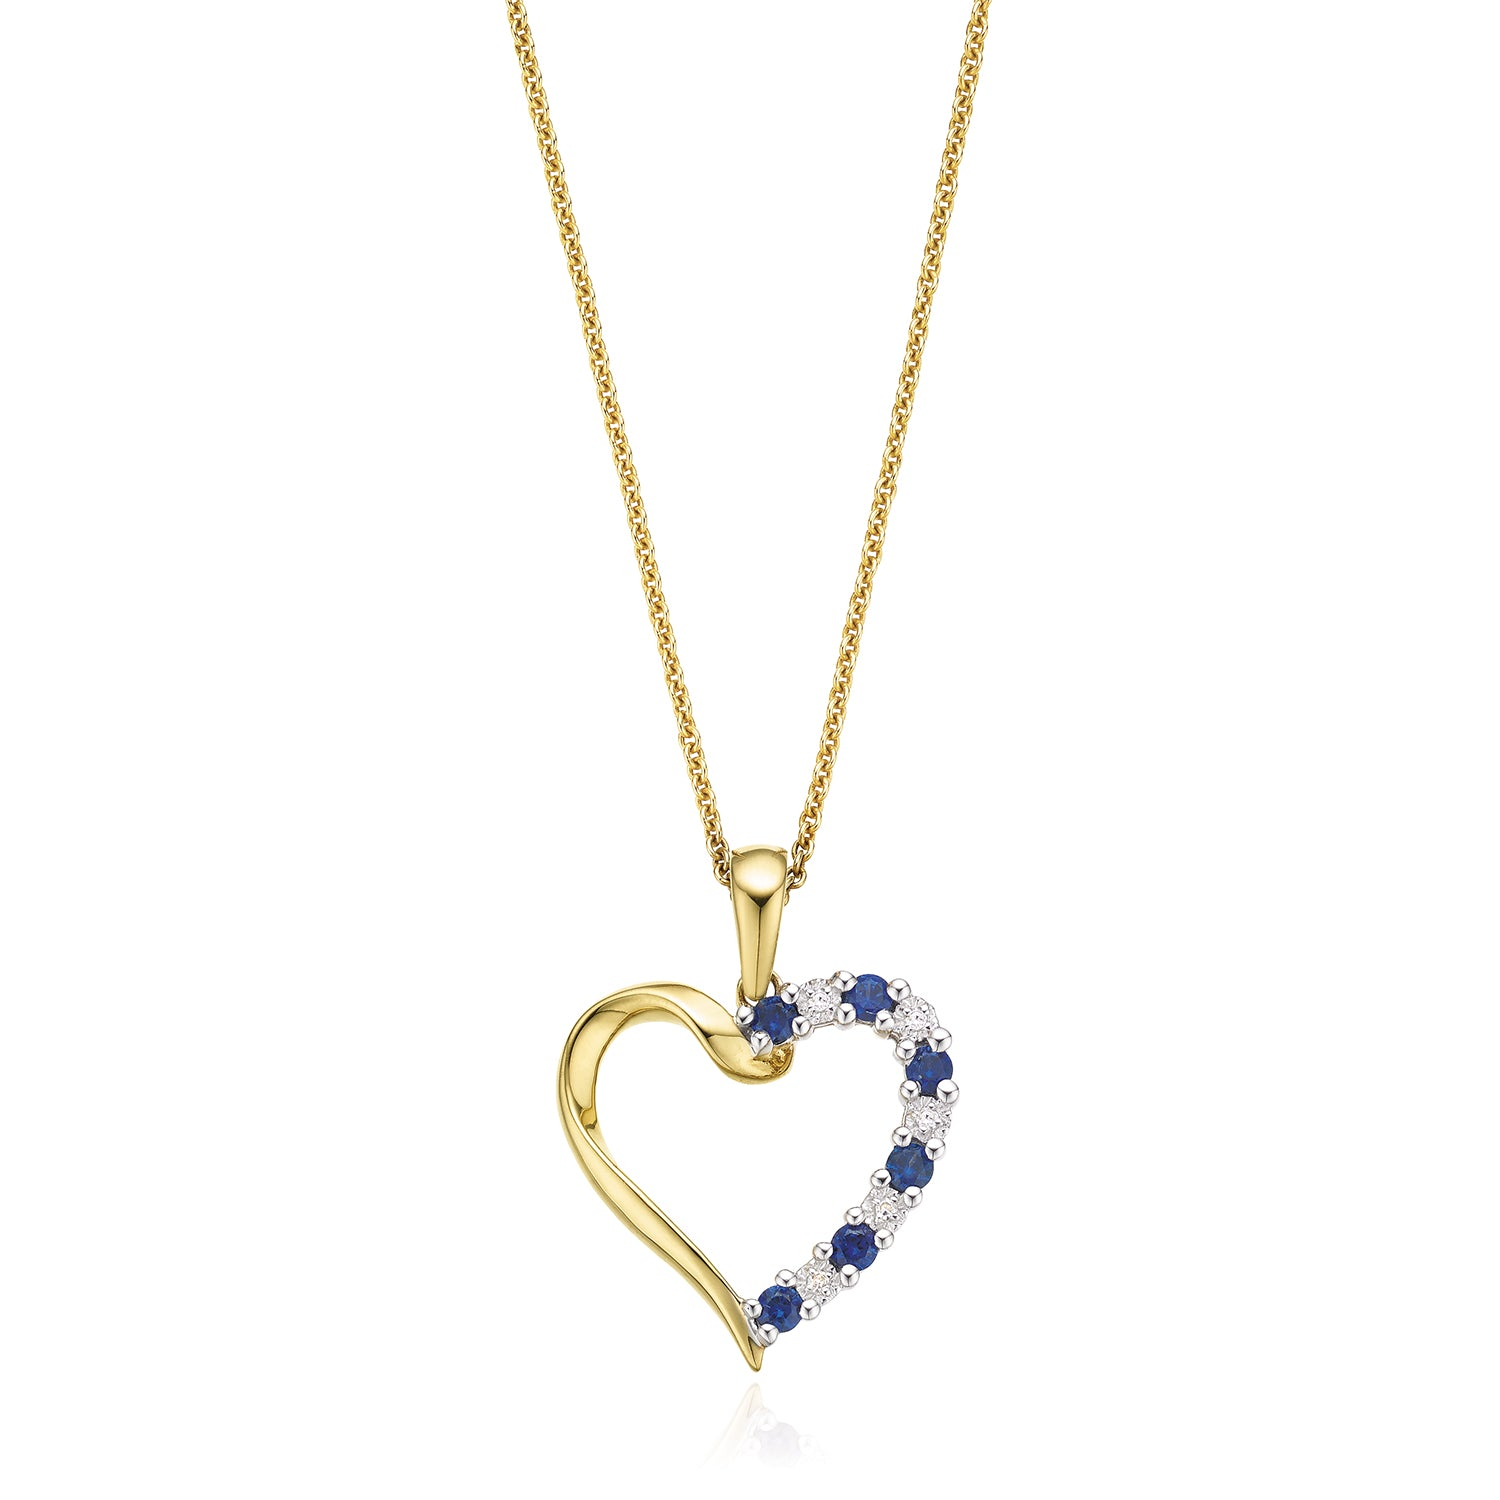 9ct Yellow Gold Round Brilliant Cut Sapphire Diamond Pendant Set